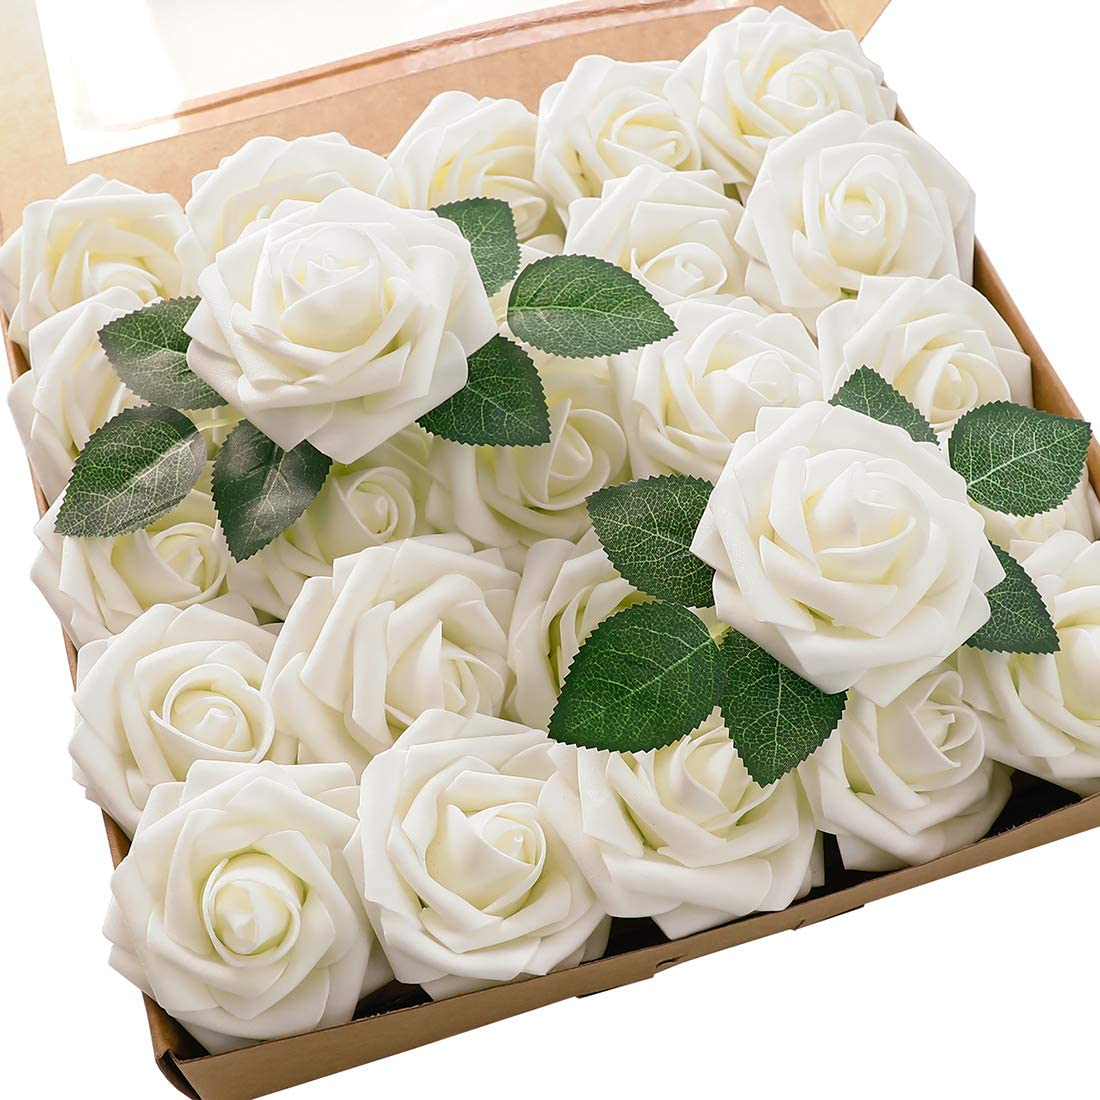 Floroom Artificial Flowers 25pcs Real Looking Foam Ivory Fake Roses with Stems for DIY Wedding Bouquets White Bridal Shower Centerpieces Arrangements Party Tables Decorations